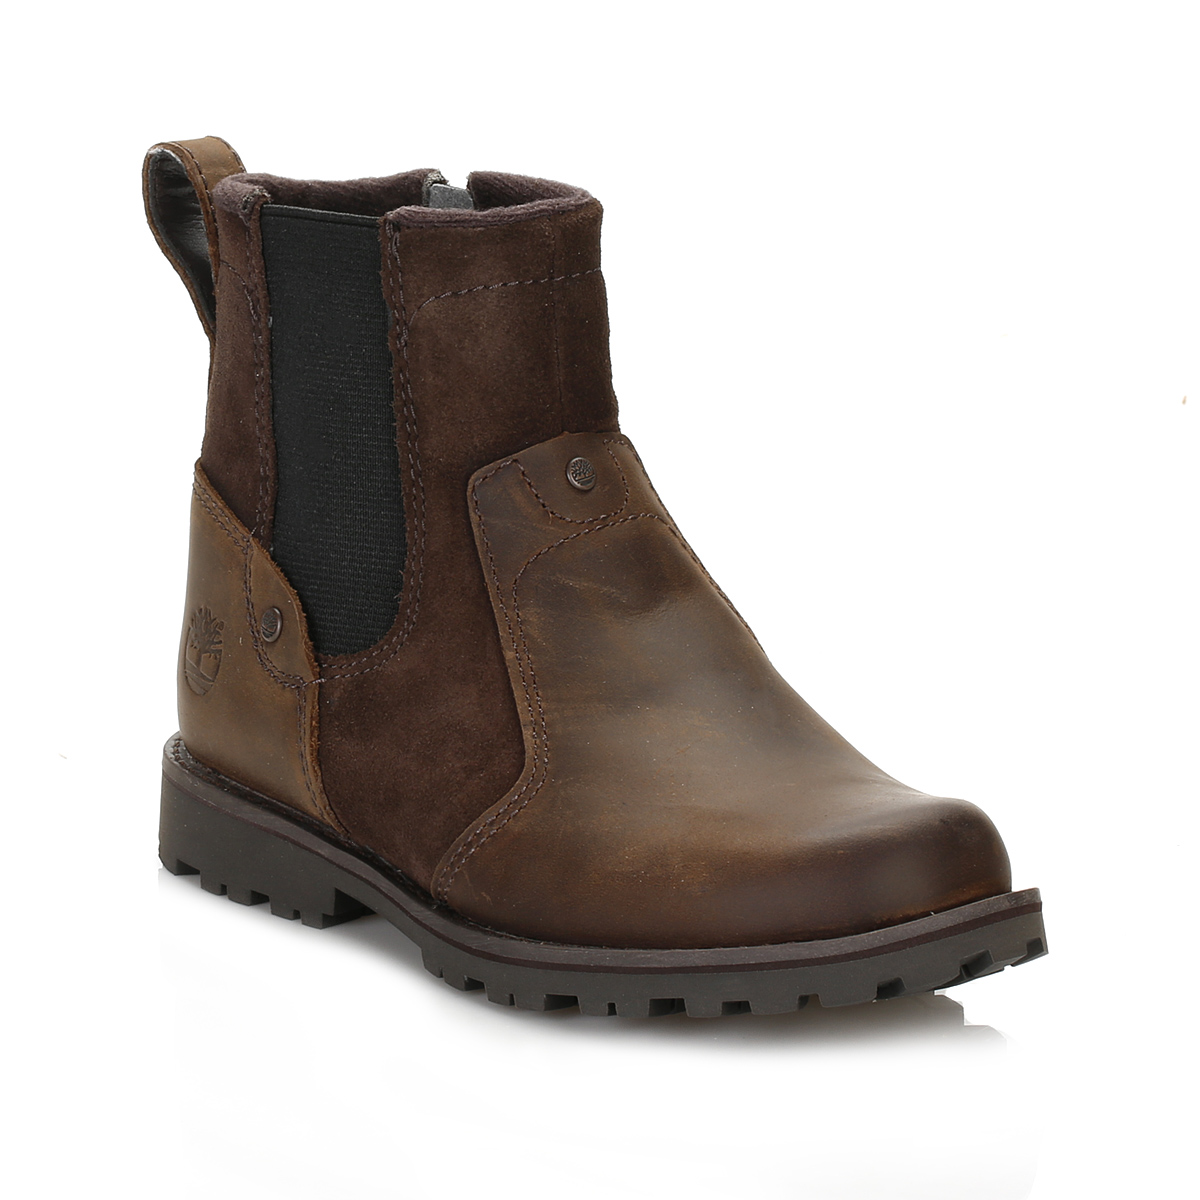 Childrens Brown Leather Shoes